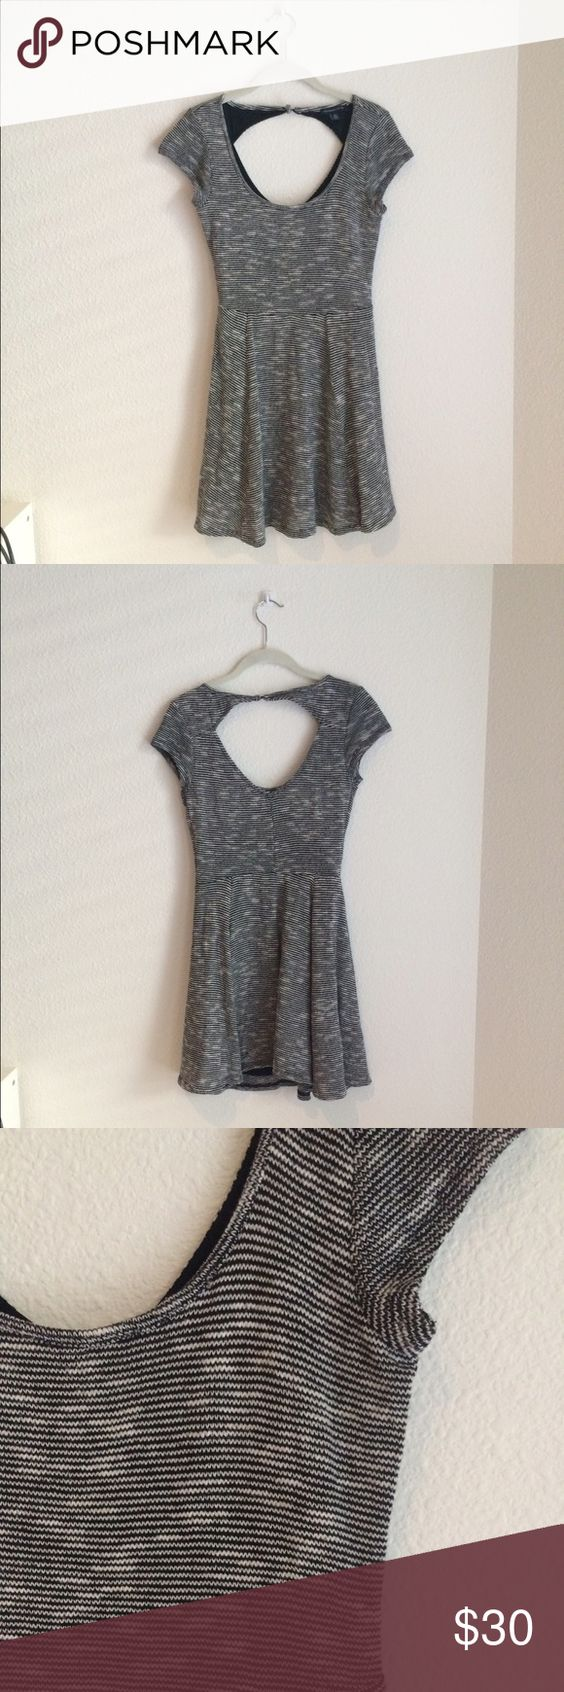 Textured Stretch Fit and Flare Dress Grey short sleeve dress with flared skirt and soft knitted texture American Eagle Outfitters Dresses Mini